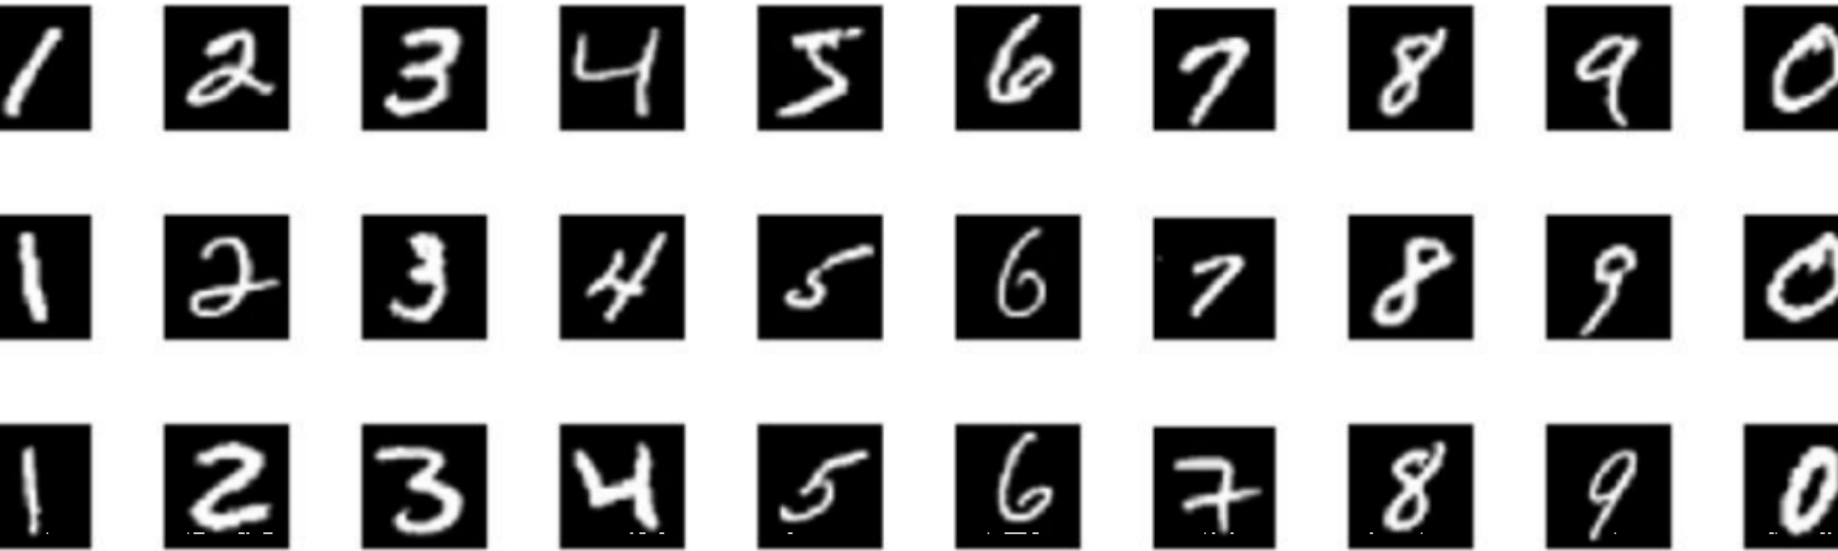 Applying Machine Learning to Recognize Handwritten Characters